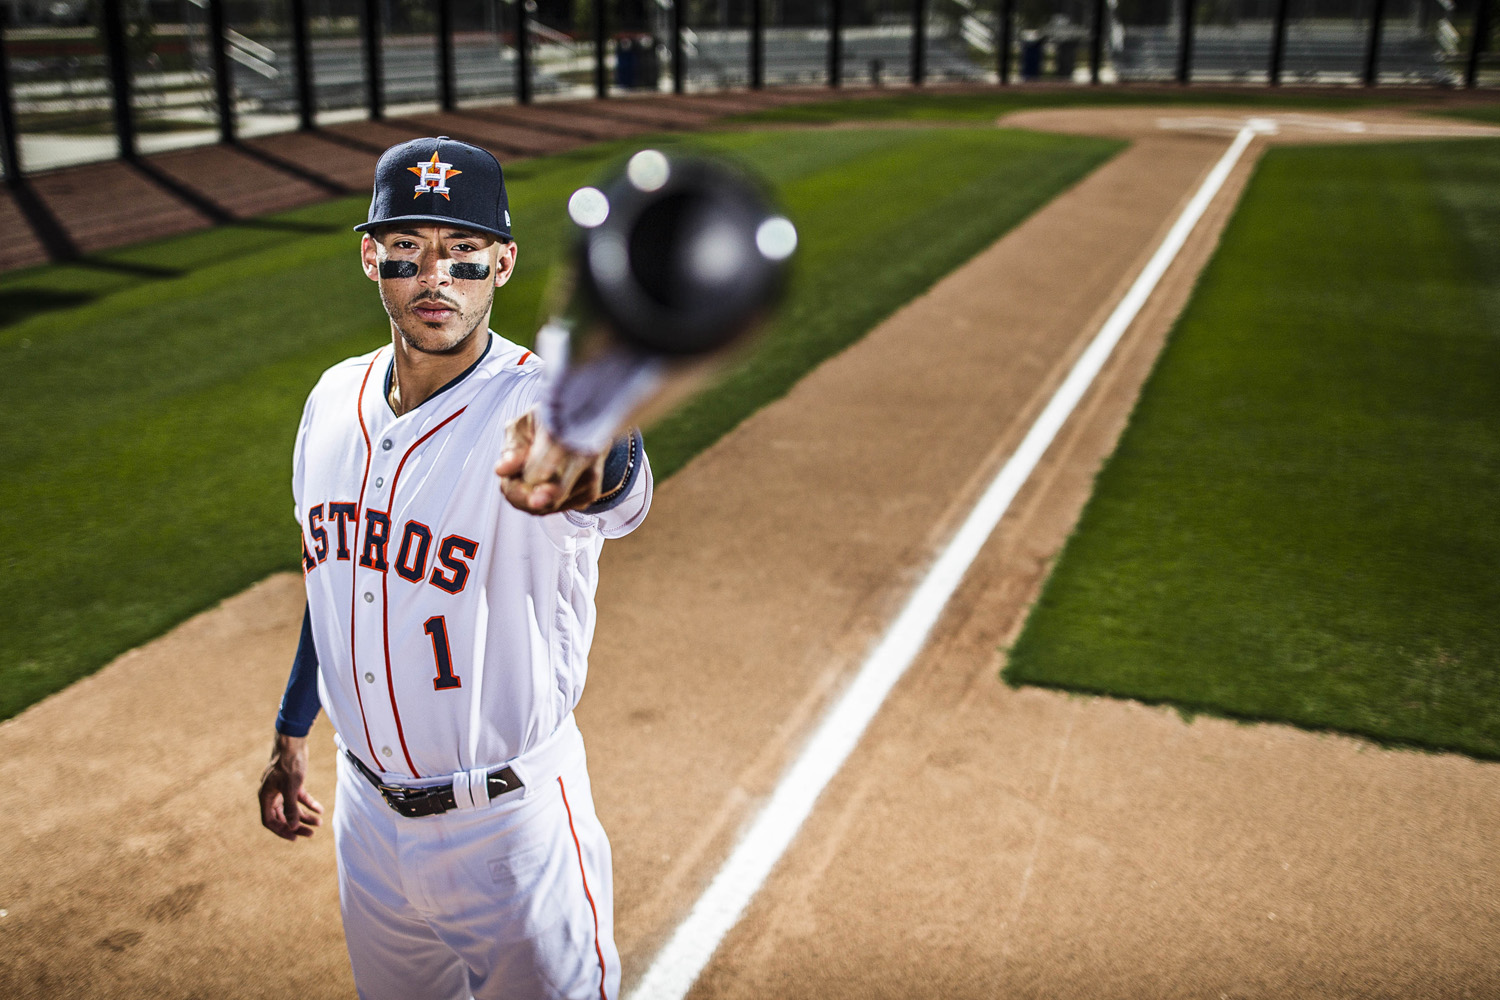 Carlos Correa, Houston Astros shortstop